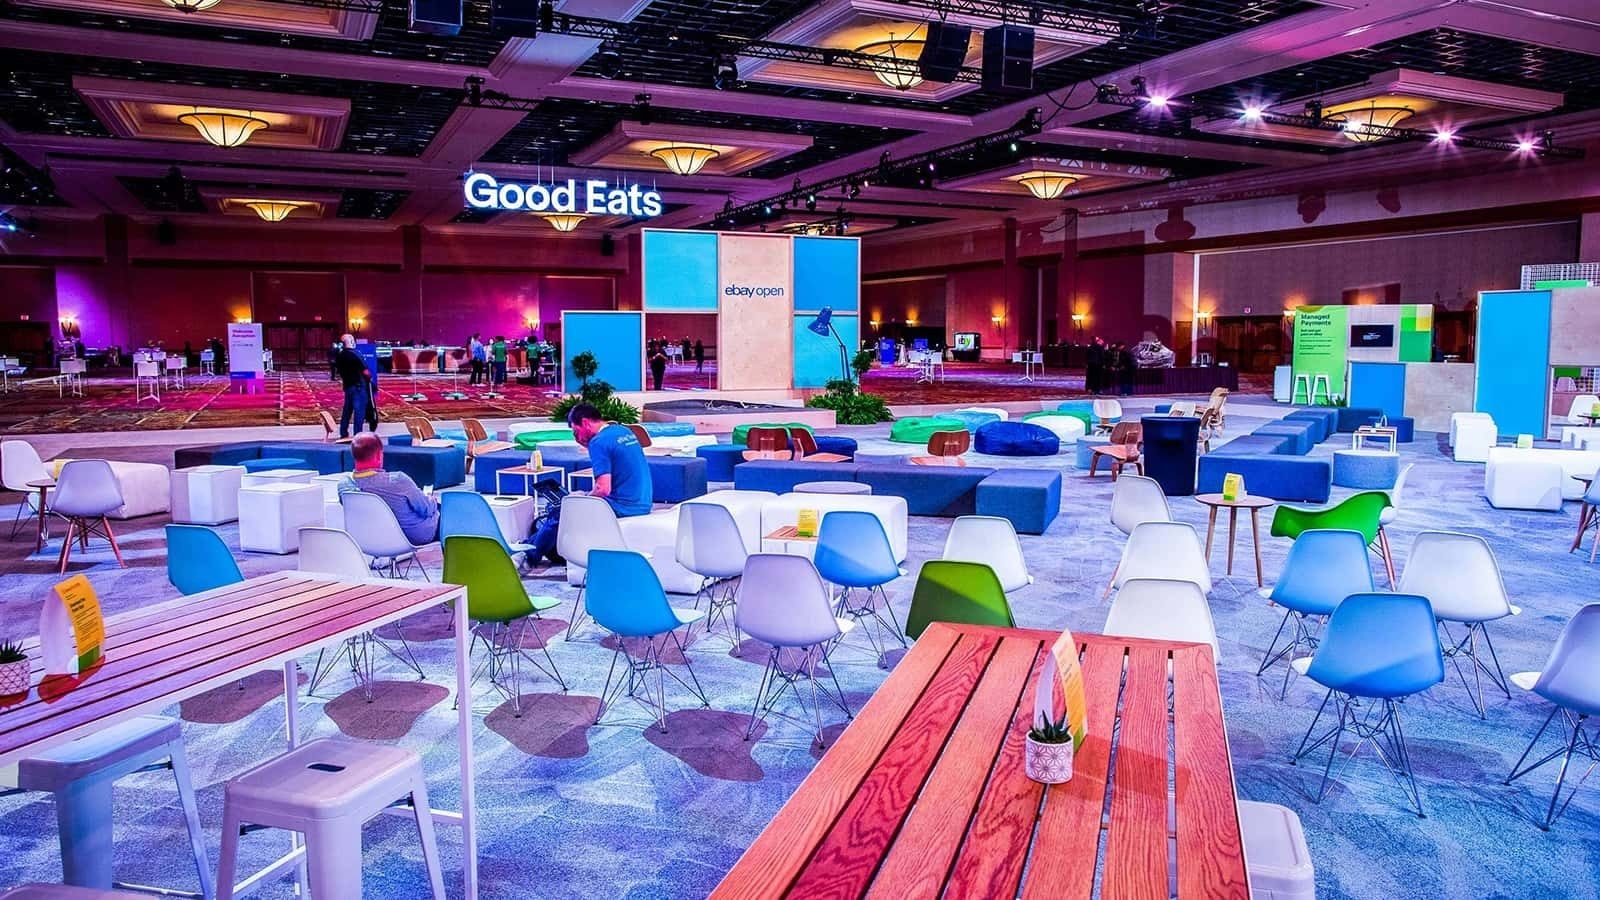 The top seller summit floor is ready to go at Ebay open!